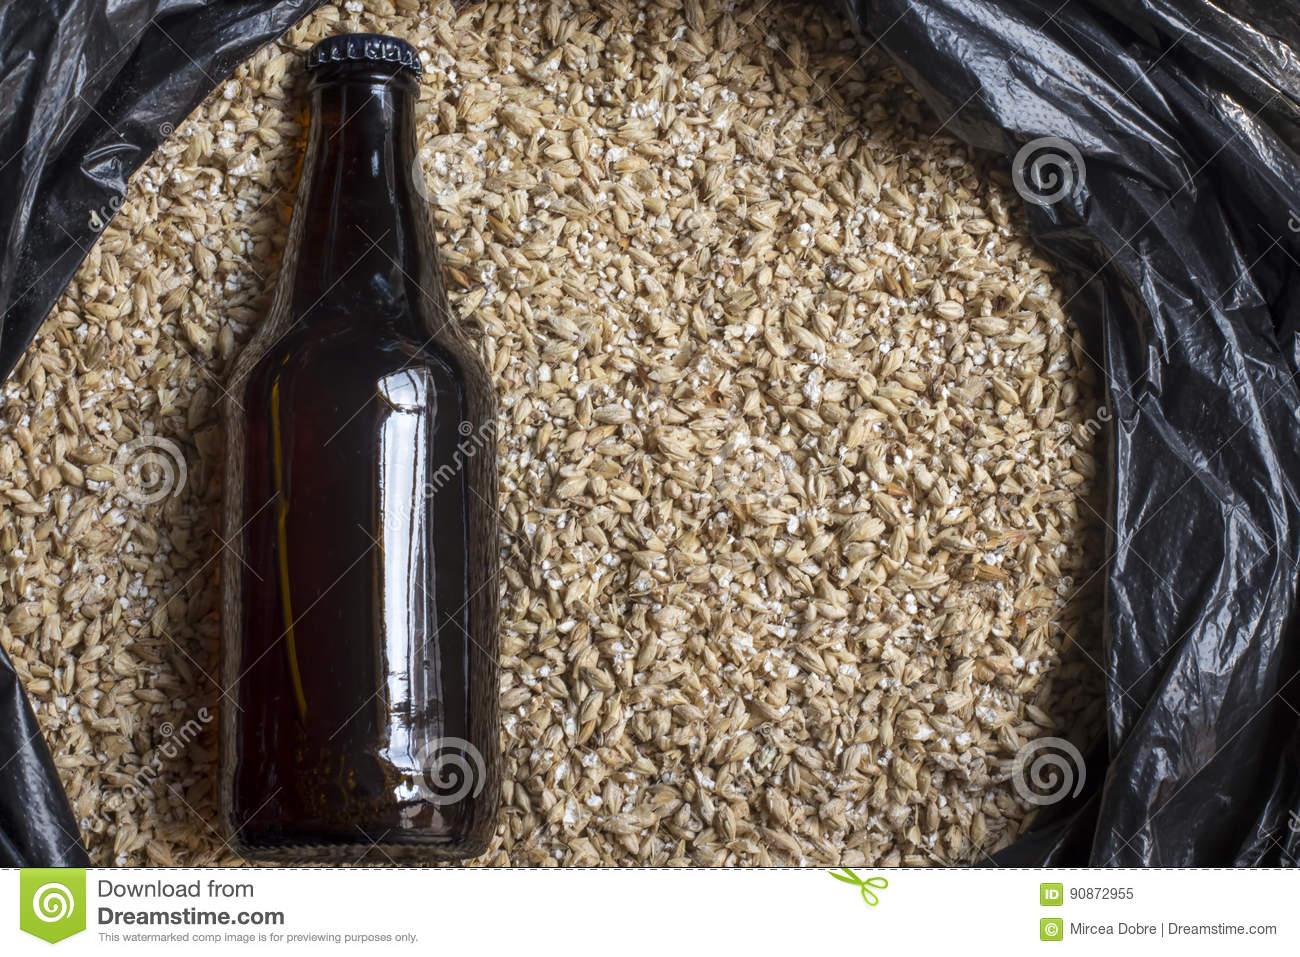 Amber malt with bottle, beer brewing ingredients